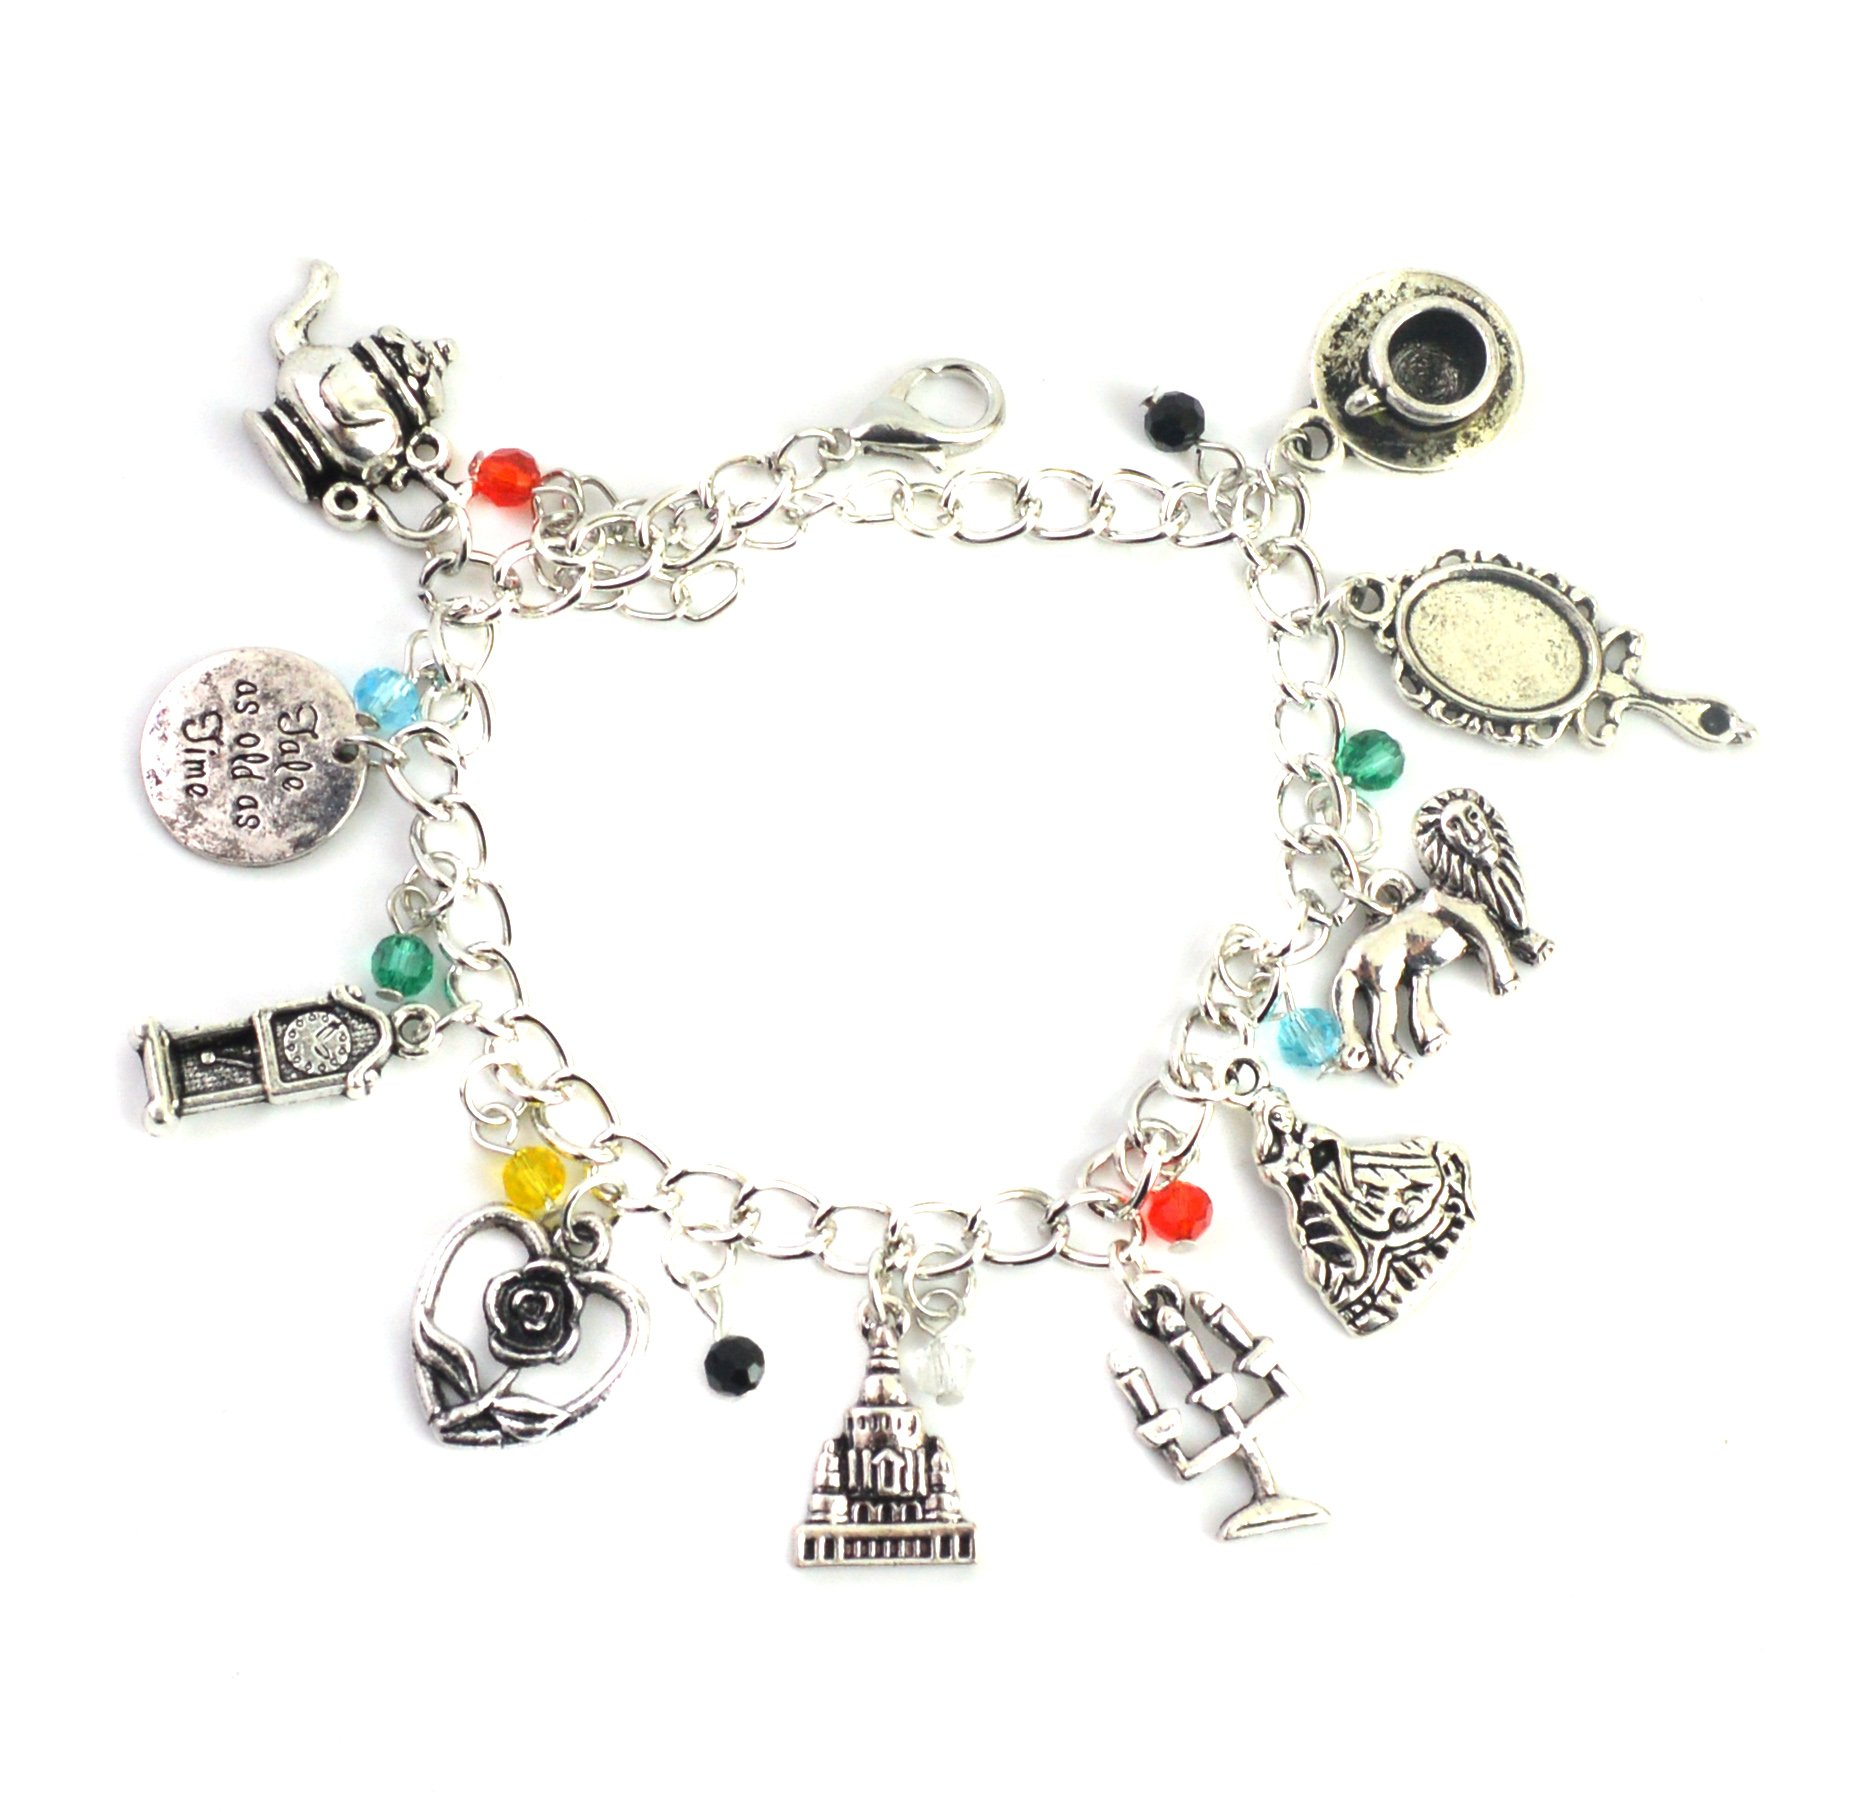 Beauty And The Beast Charm Bracelet – Movie Inspired Silver Bracelet For Girls in Gift Box